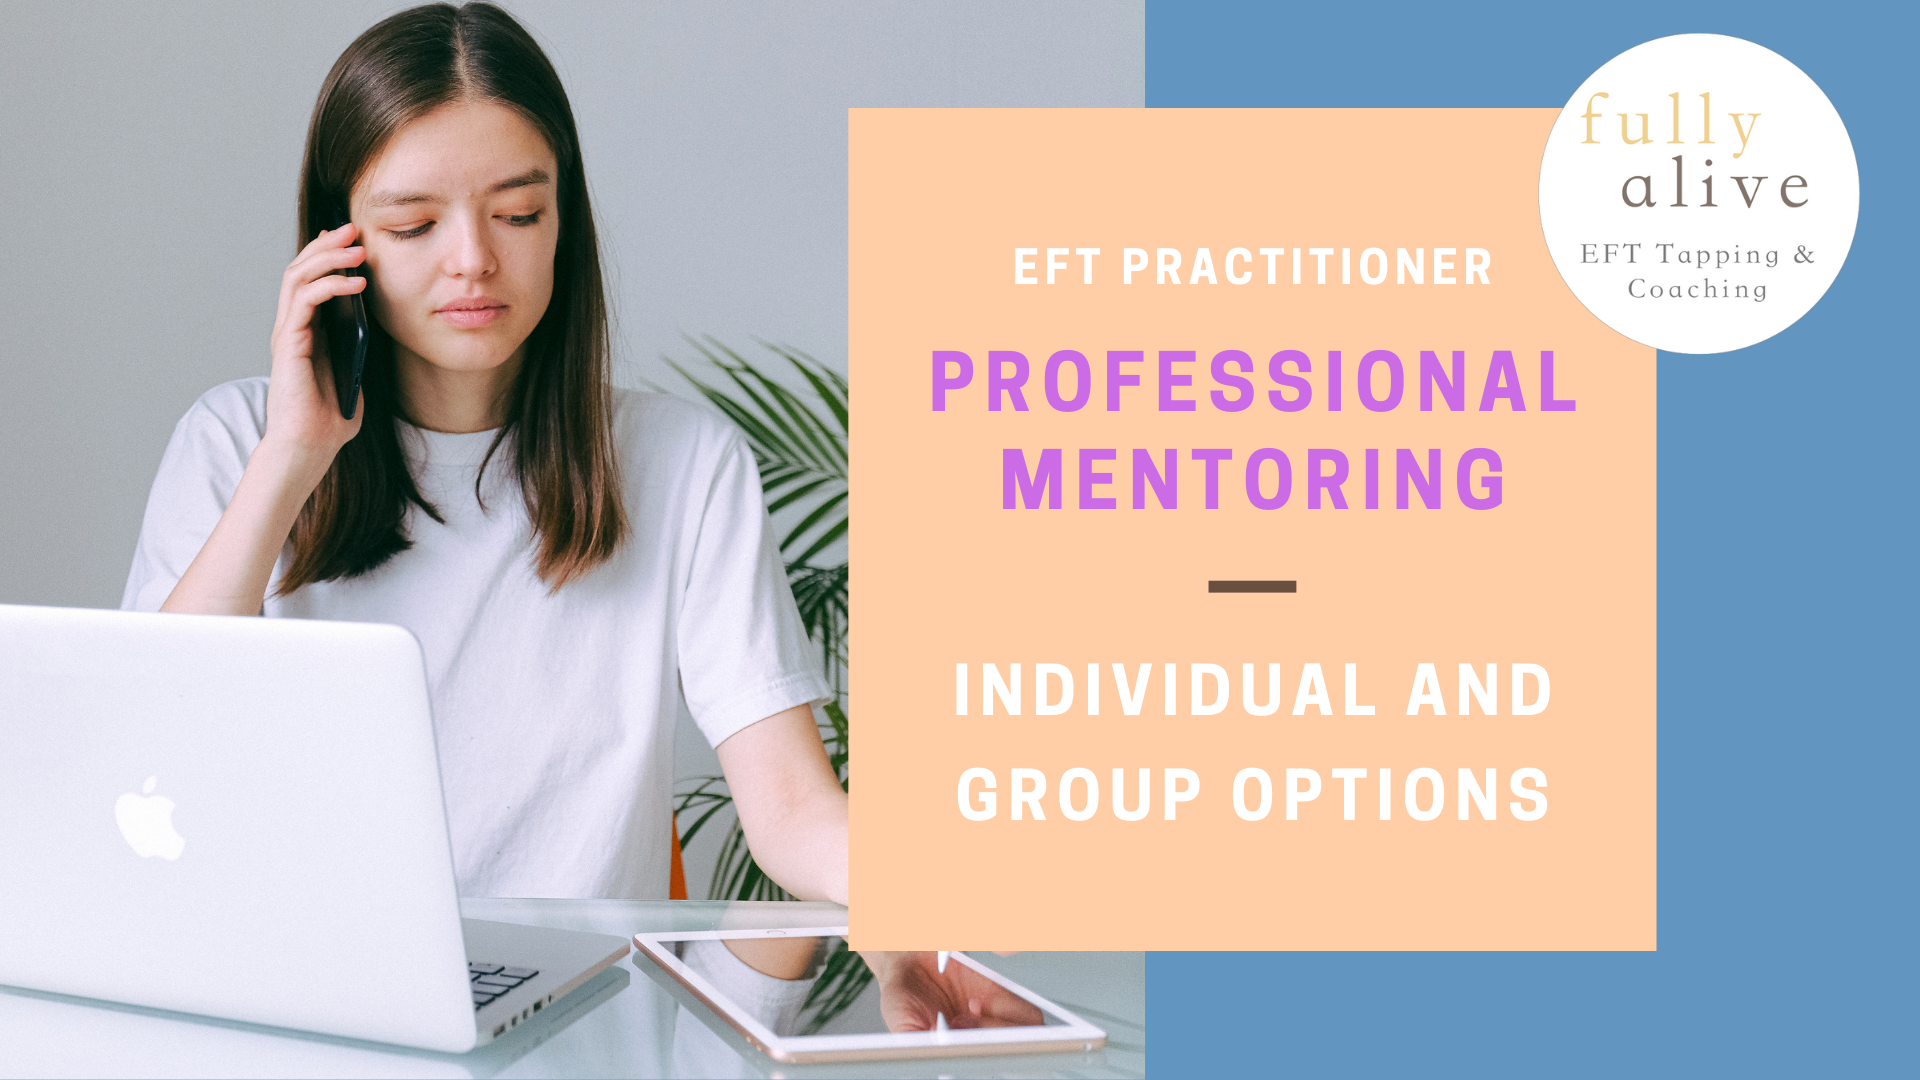 Professional mentoring for EFT Practioners - Individual and group mentoring options (flyer text)